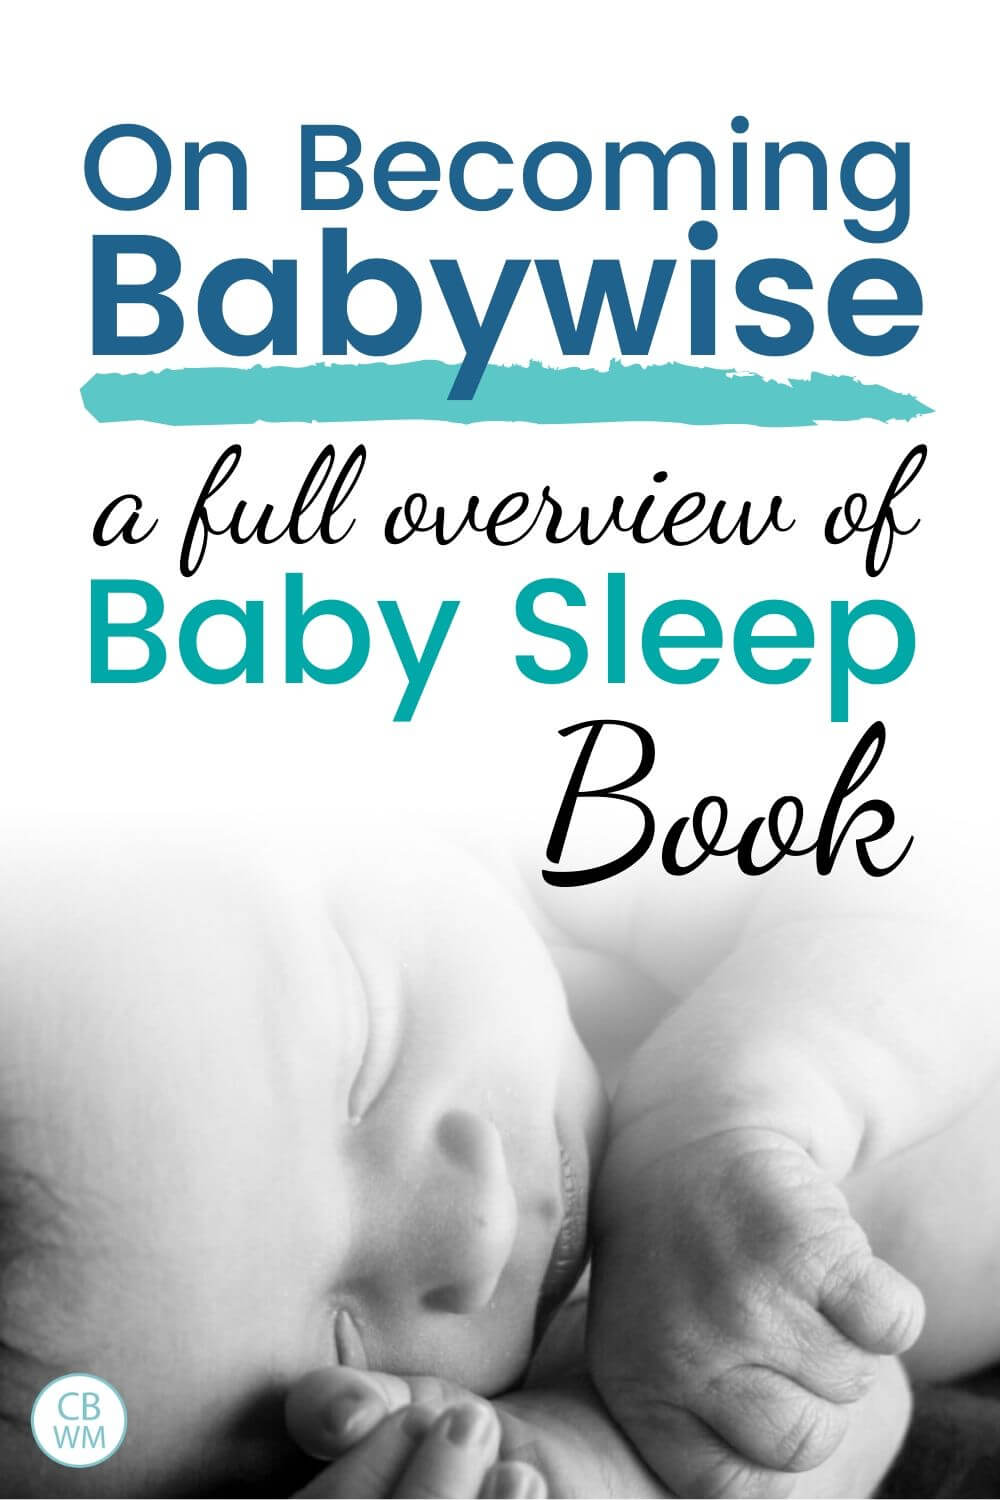 On Becoming Babywise book review pinnable image